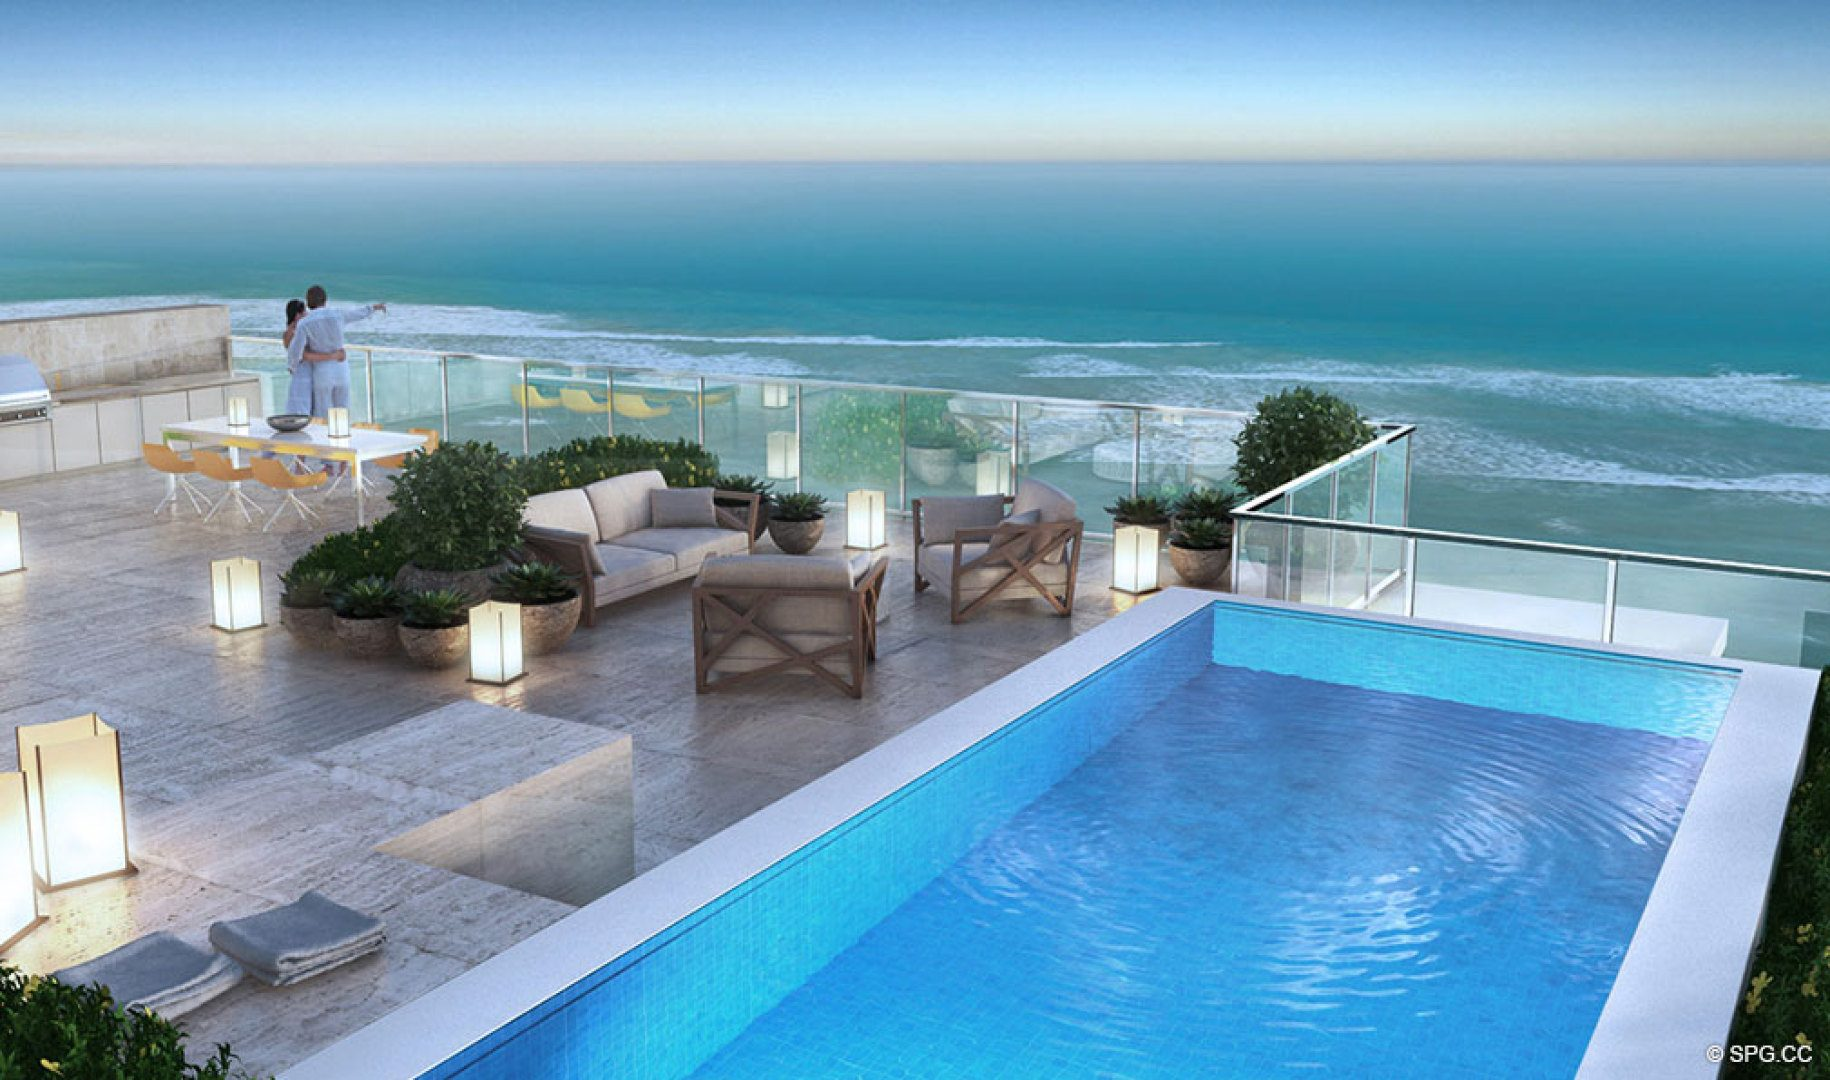 Private Rooftop Pool and Terrace at Sage Beach, Luxury Oceanfront Condos in Hollywood Beach Florida 33019